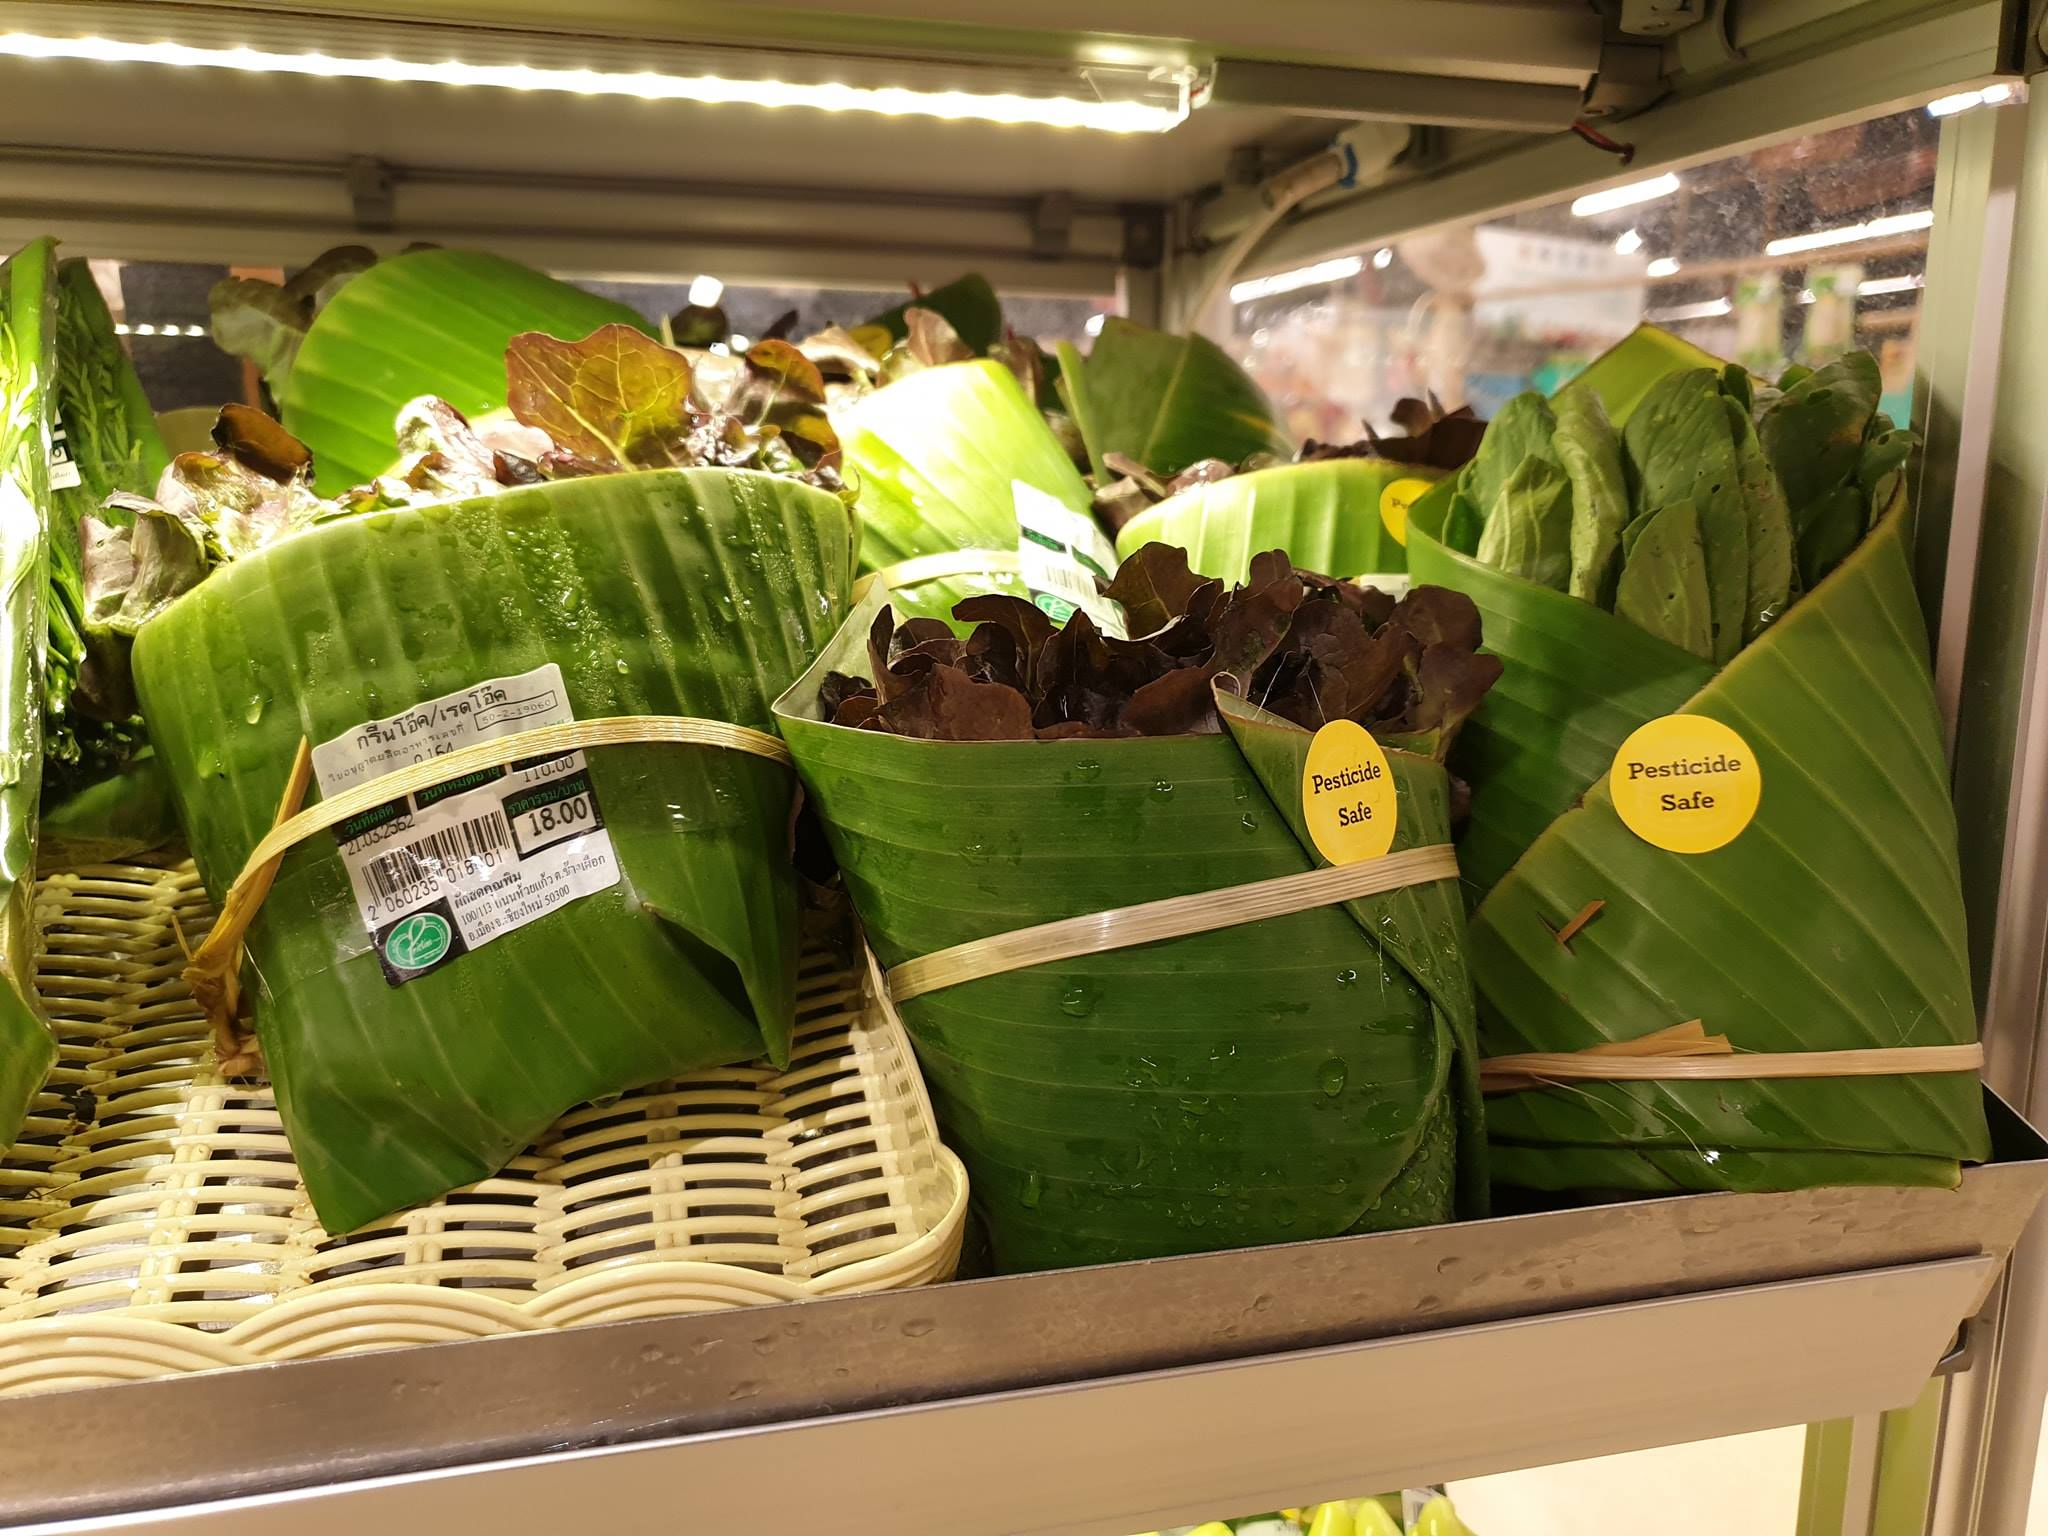 replacing plastic bags with banana leaves